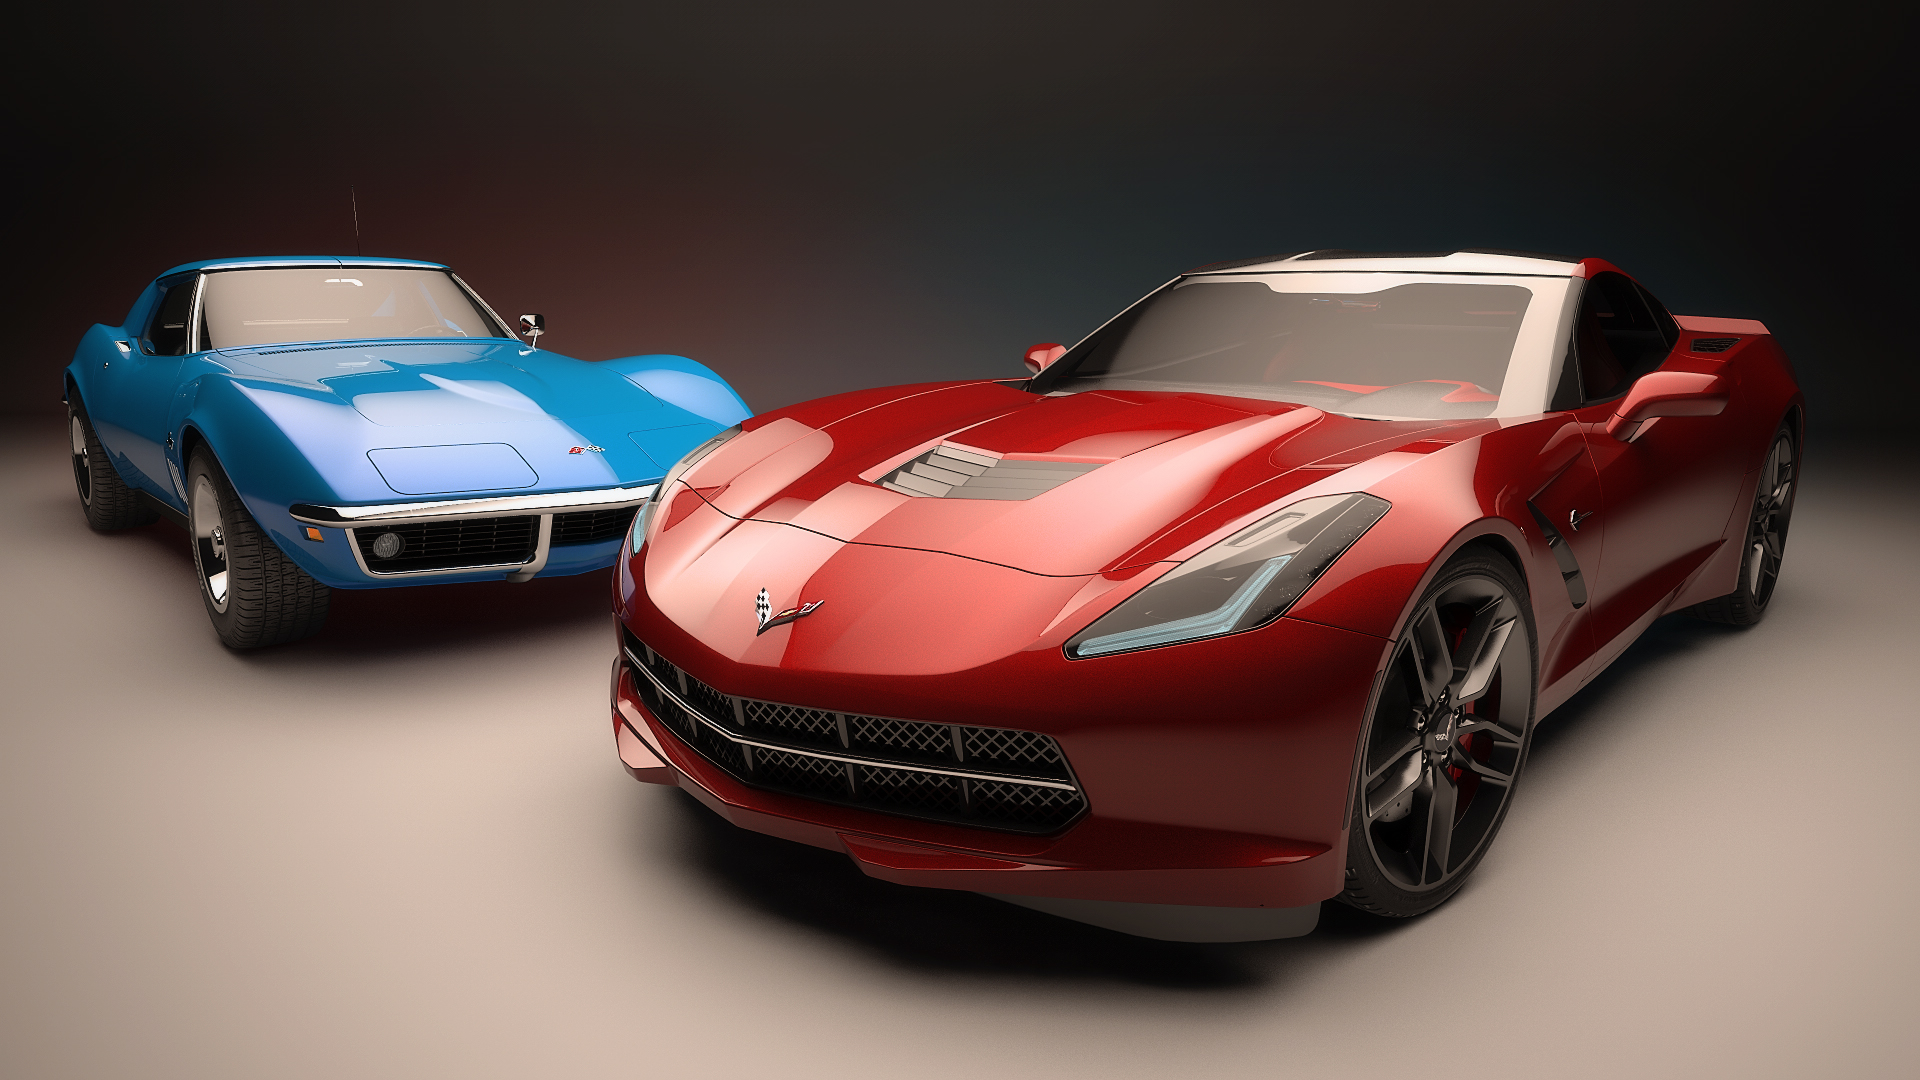 1969 Stingray Corvette 1969 Corvette Wallpaper Wallpapersafari